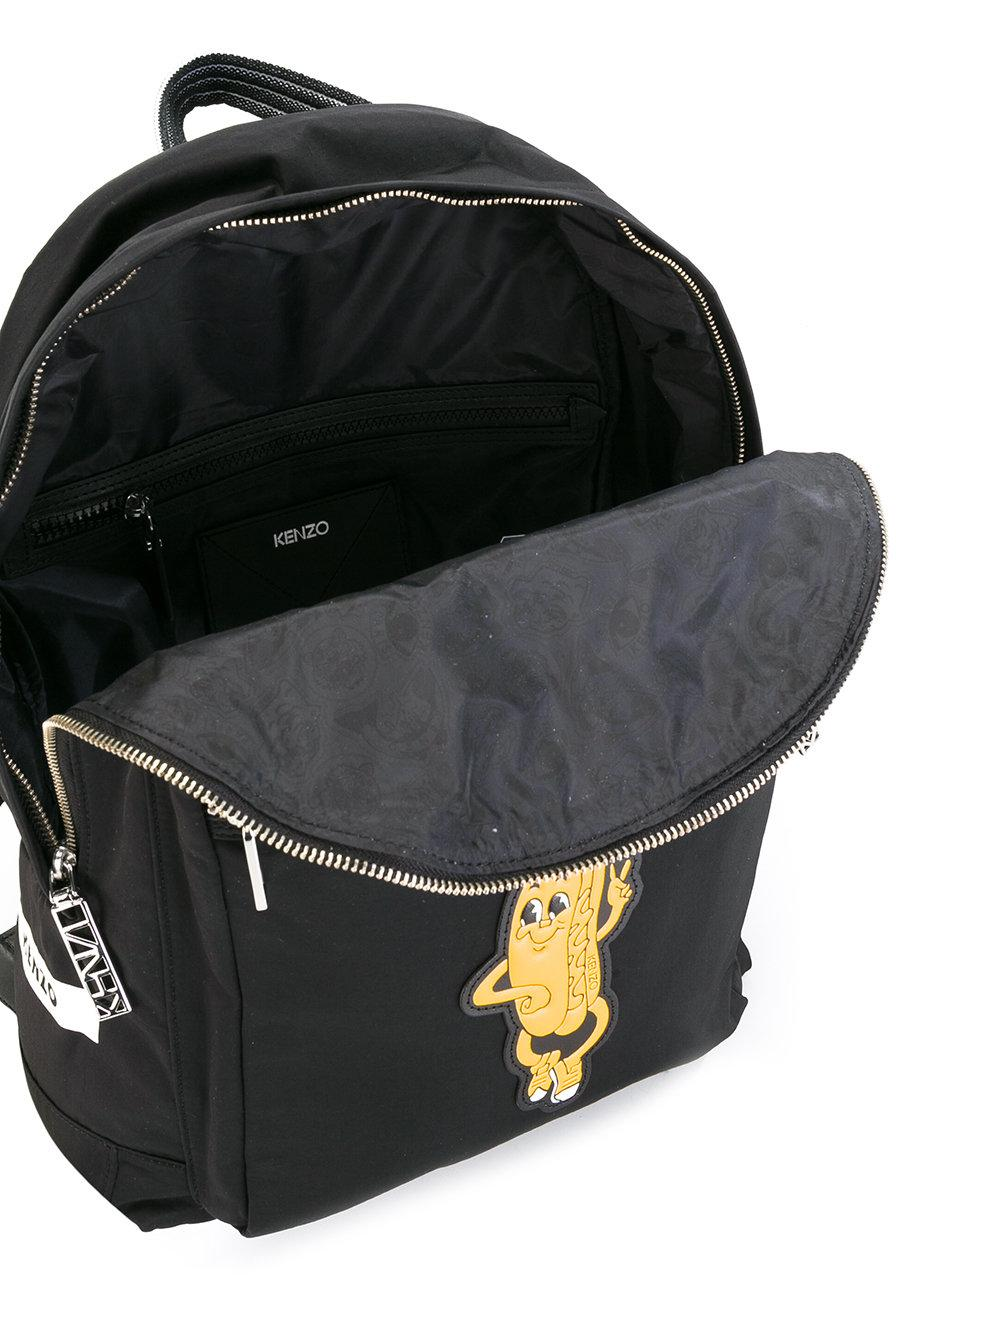 KENZO Synthetic Hot Dog Backpack in Black for Men